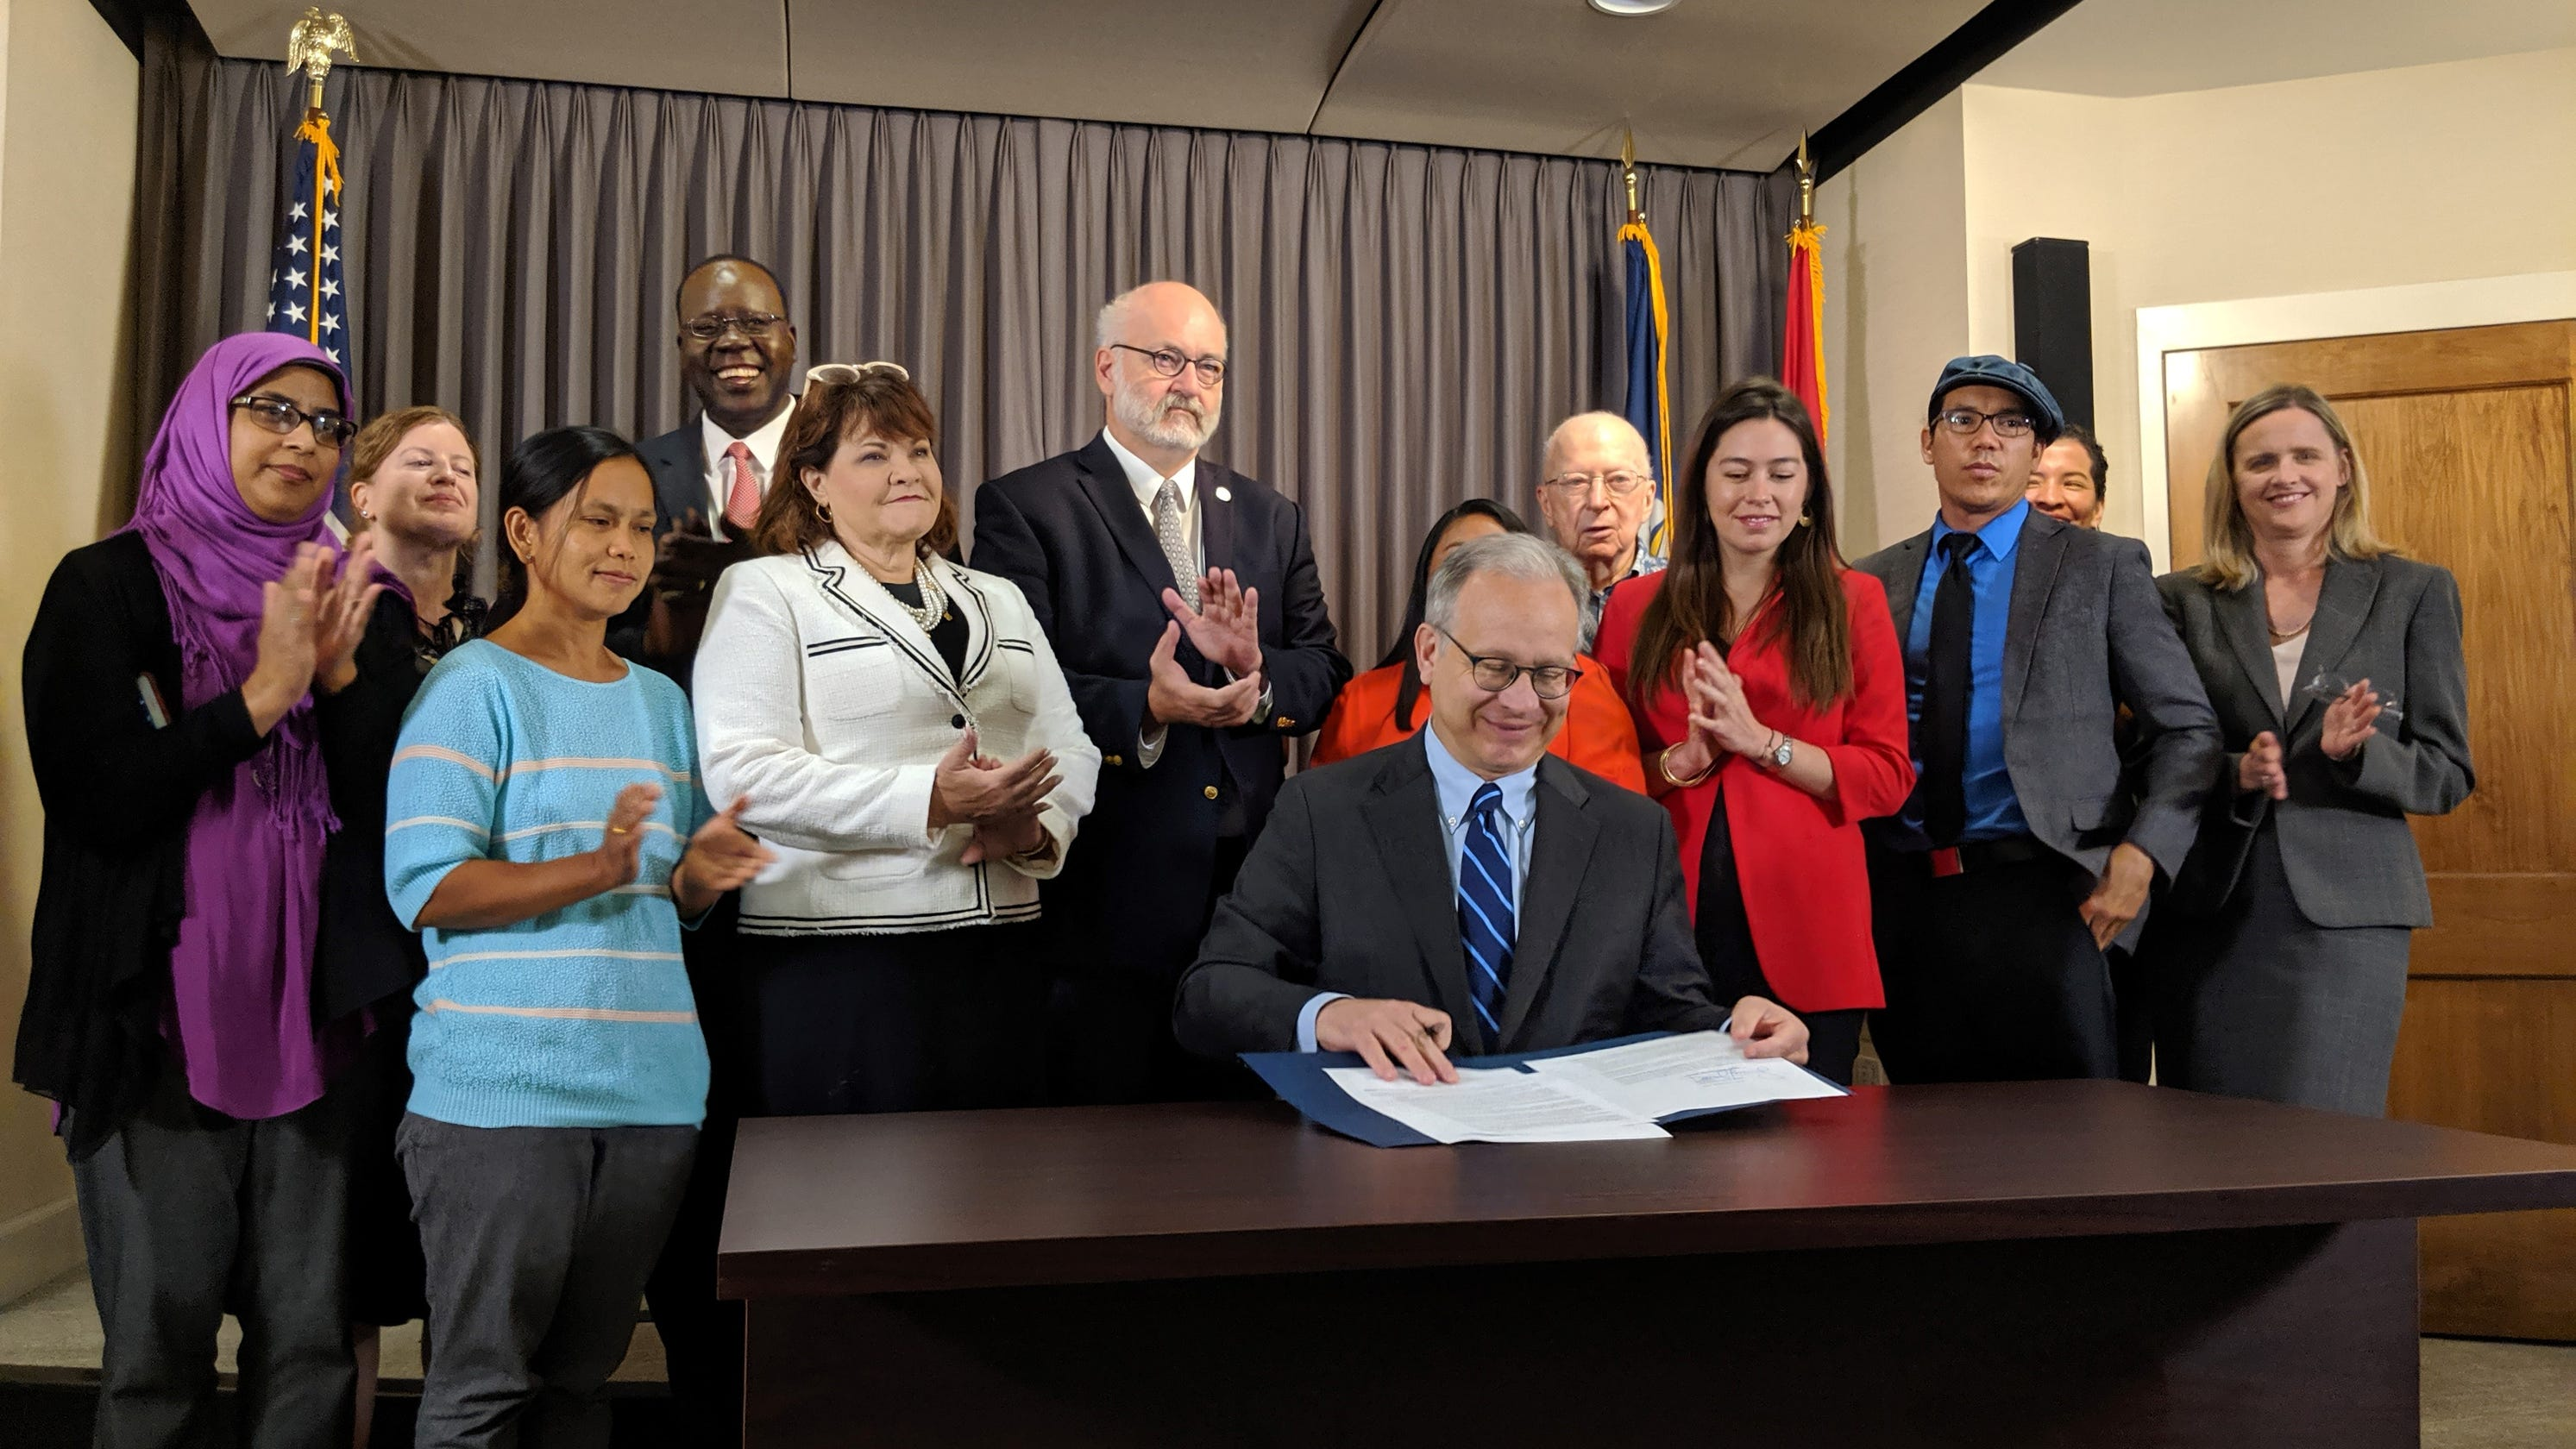 Mayor Briley signs the executive order denouncing TN's anti-sanctuary city law (photo credit: The Tennessean)